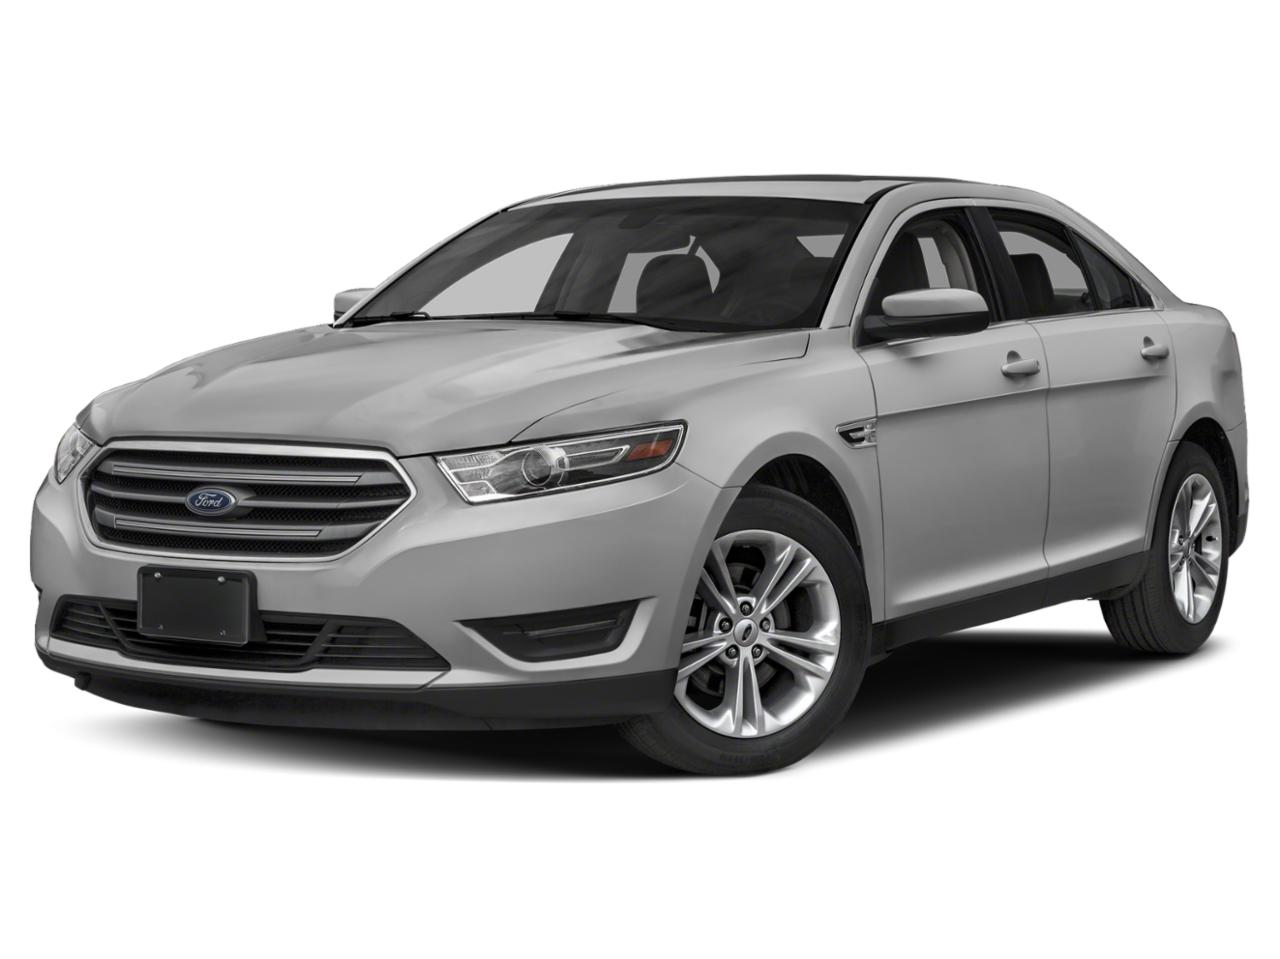 2019 Ford Taurus Vehicle Photo in Safford, AZ 85546